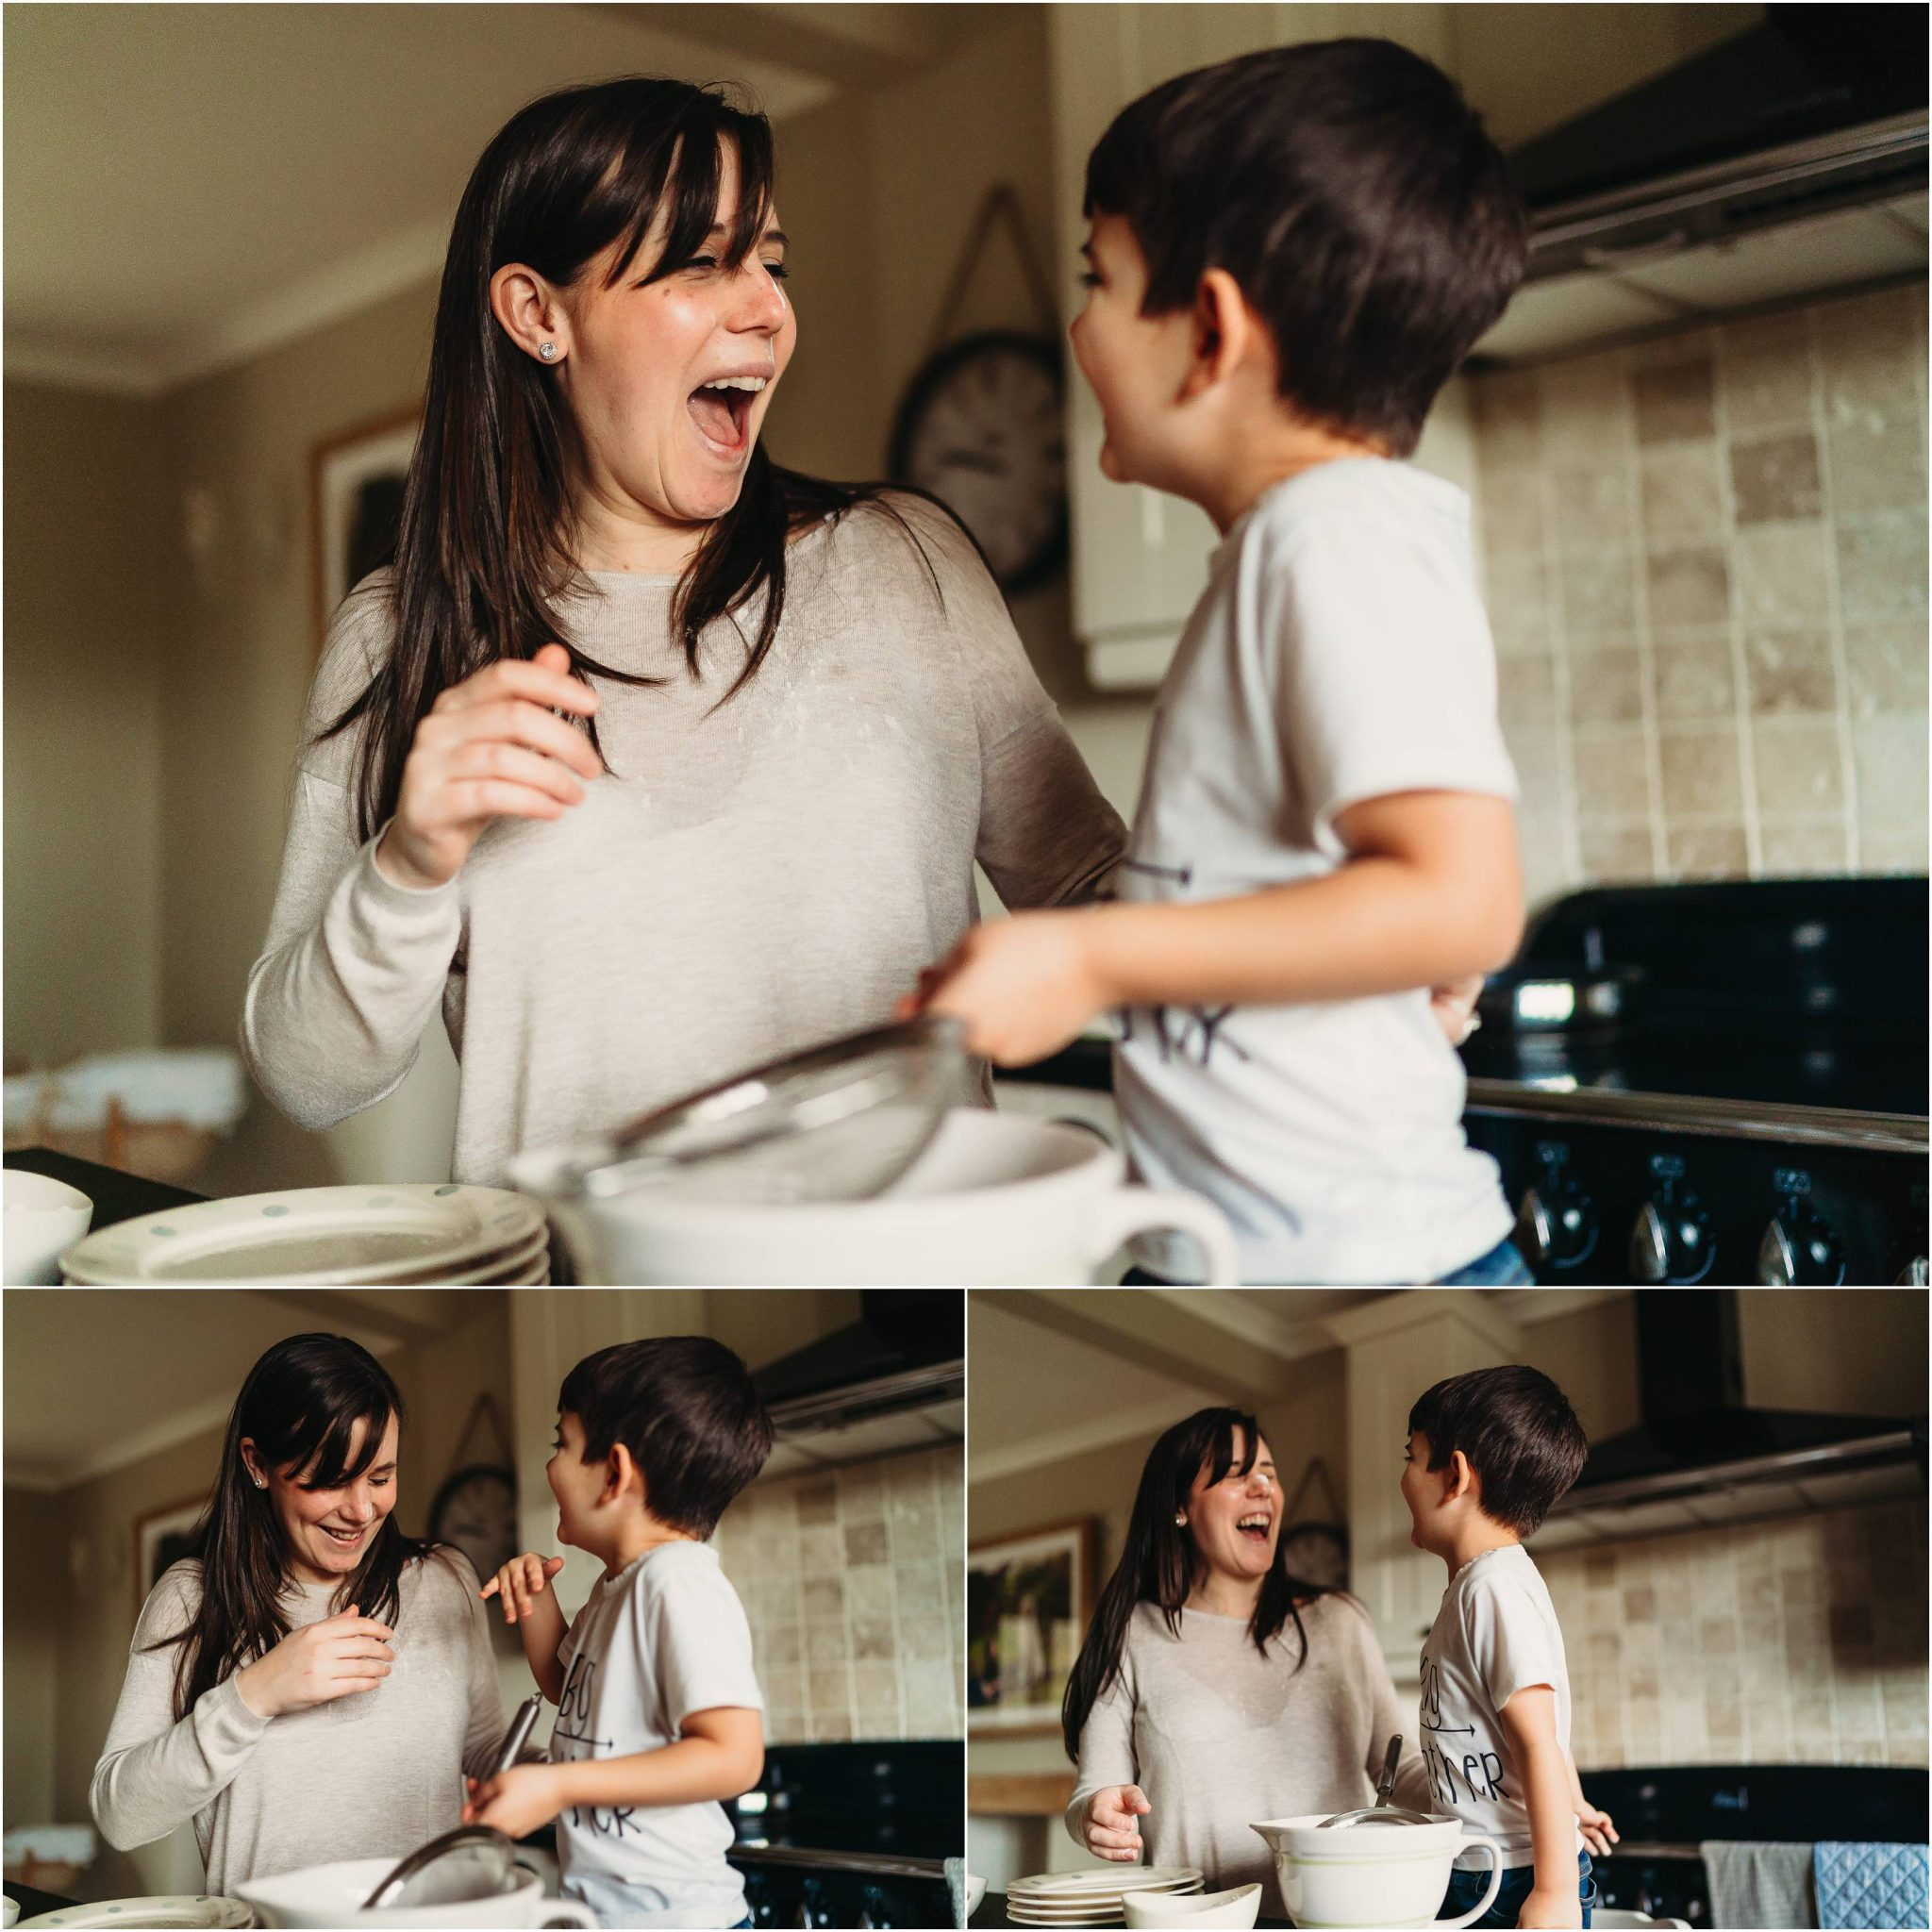 AT HOME FAMILY LIFESTYLE SHOOT - NORFOLK FAMILY LIFESTYLE PHOTOGRAPHER